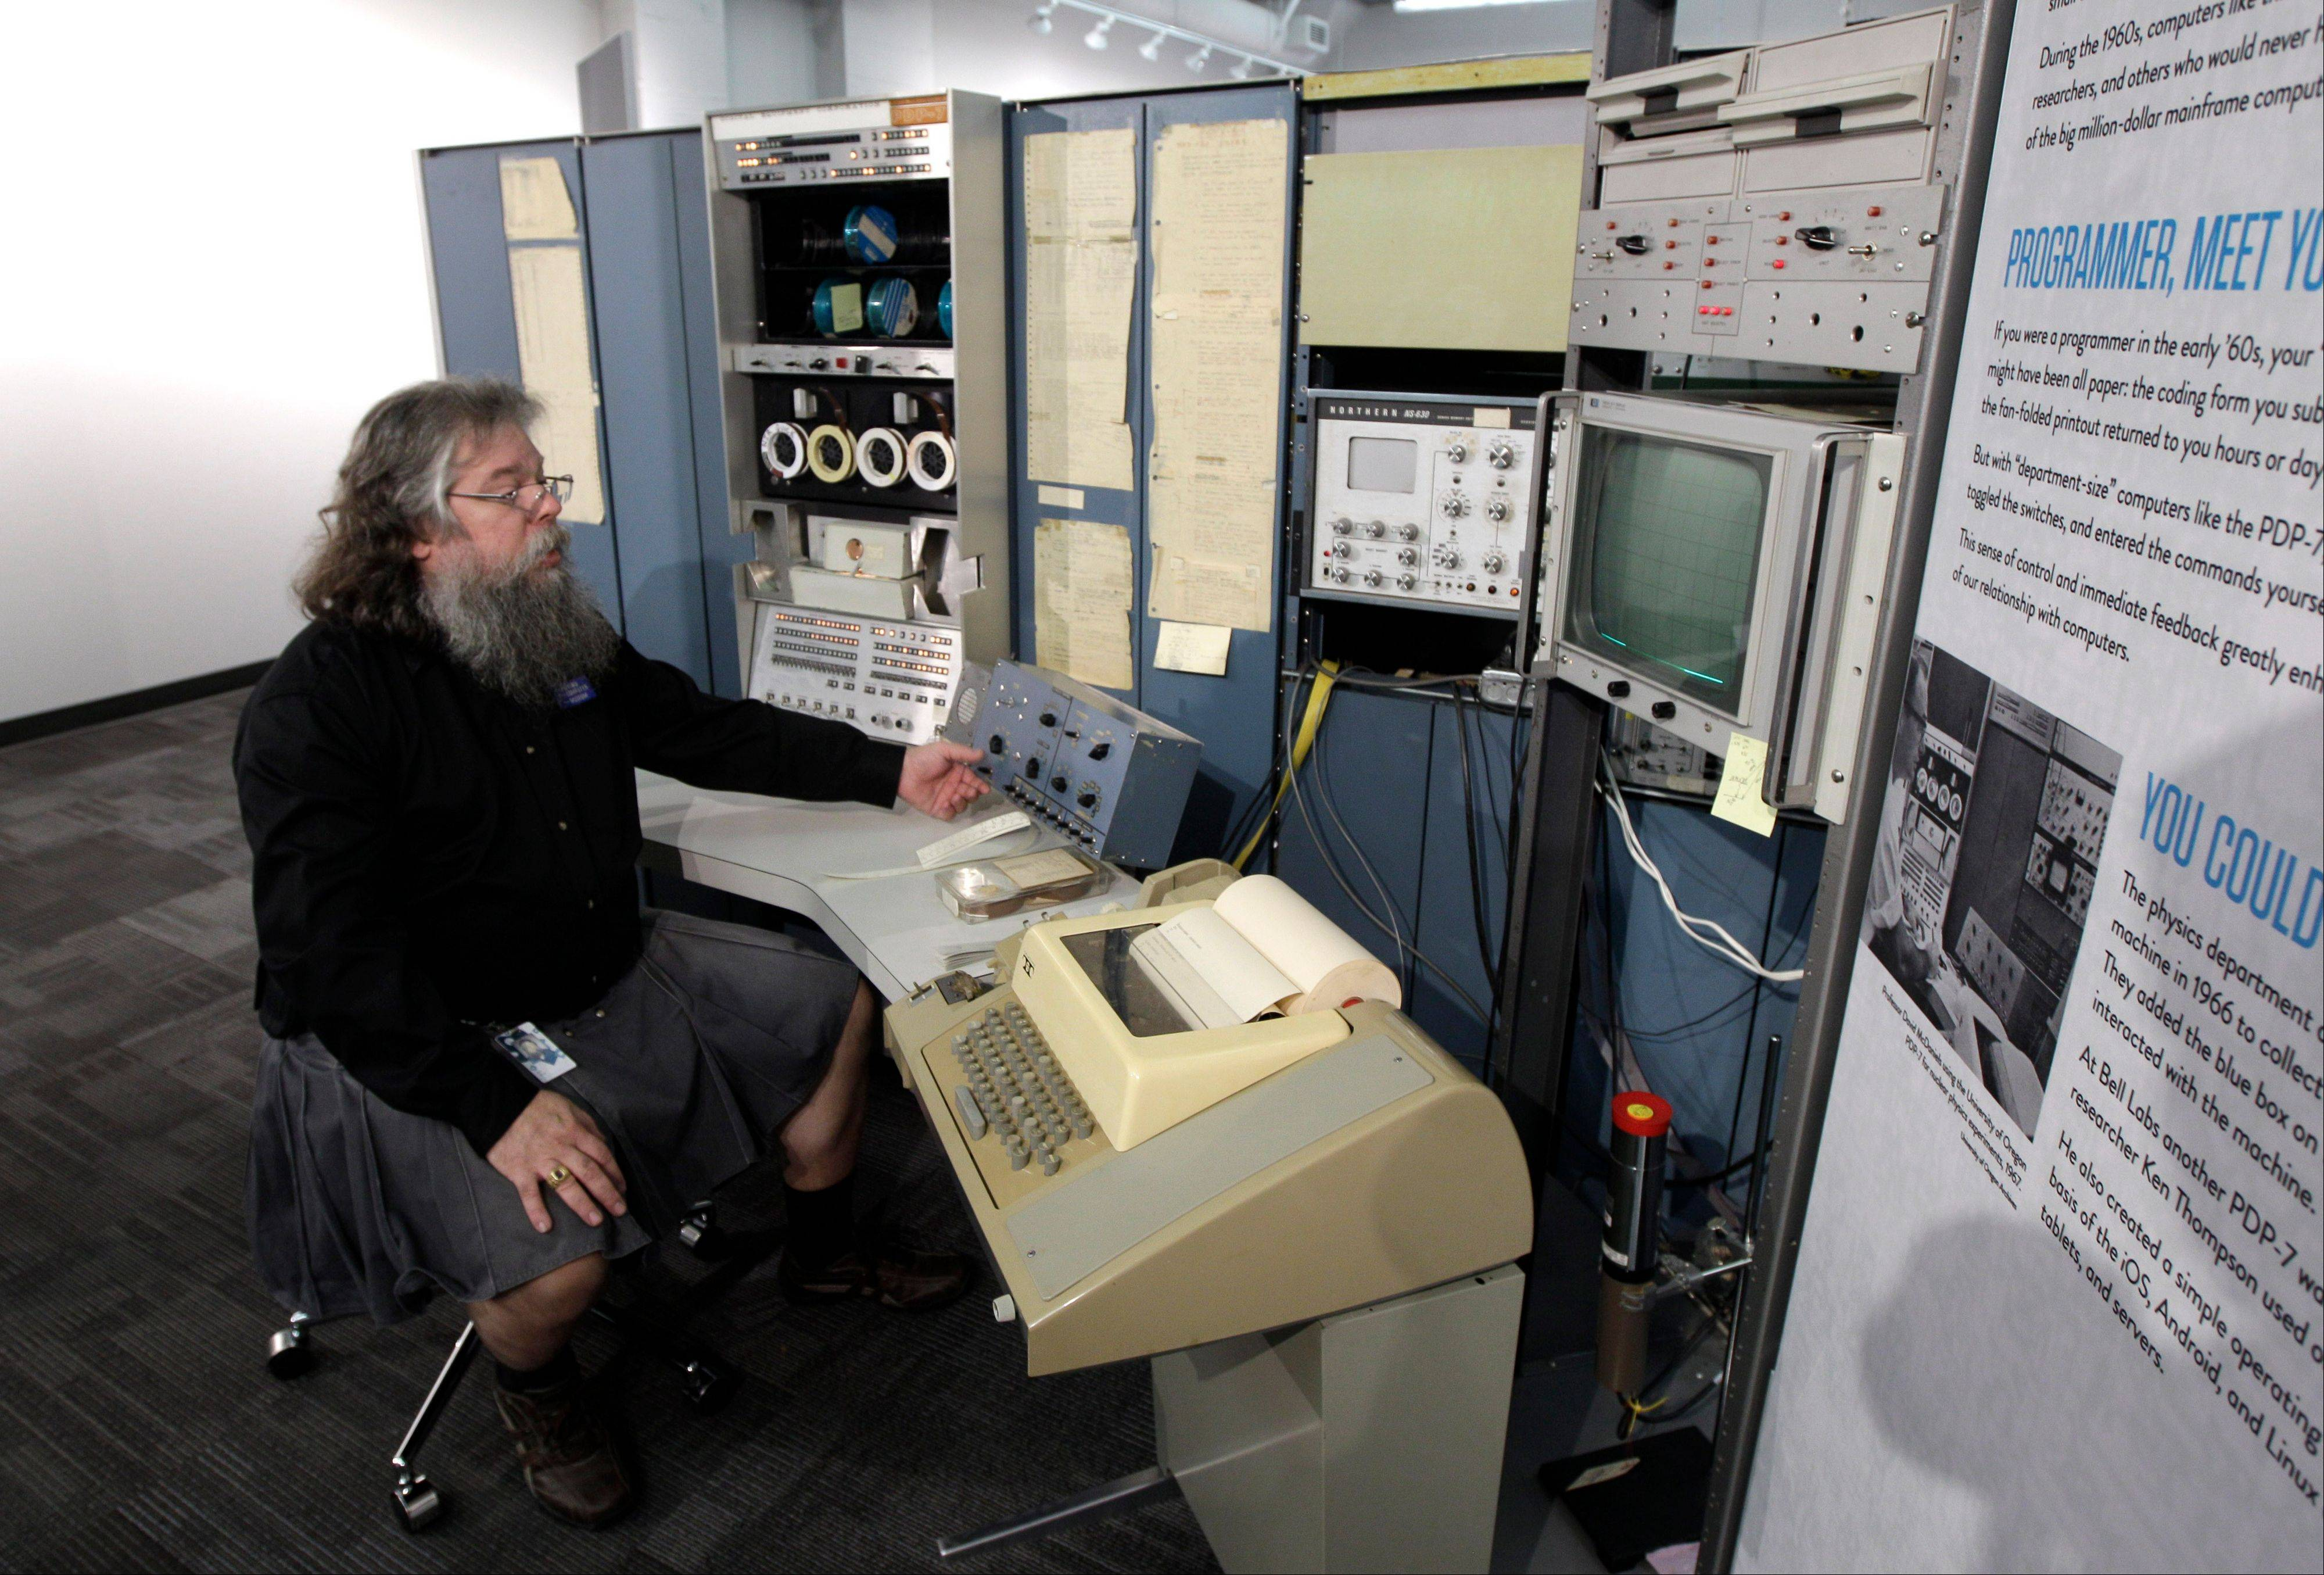 Ian King, senior vintage systems engineer at the Living Computer Museum in Seattle, sits at the controls of a DEC PDP-7 computer from the mid 1960s, one of the oldest running computers at the newly opened Living Computer Museum.